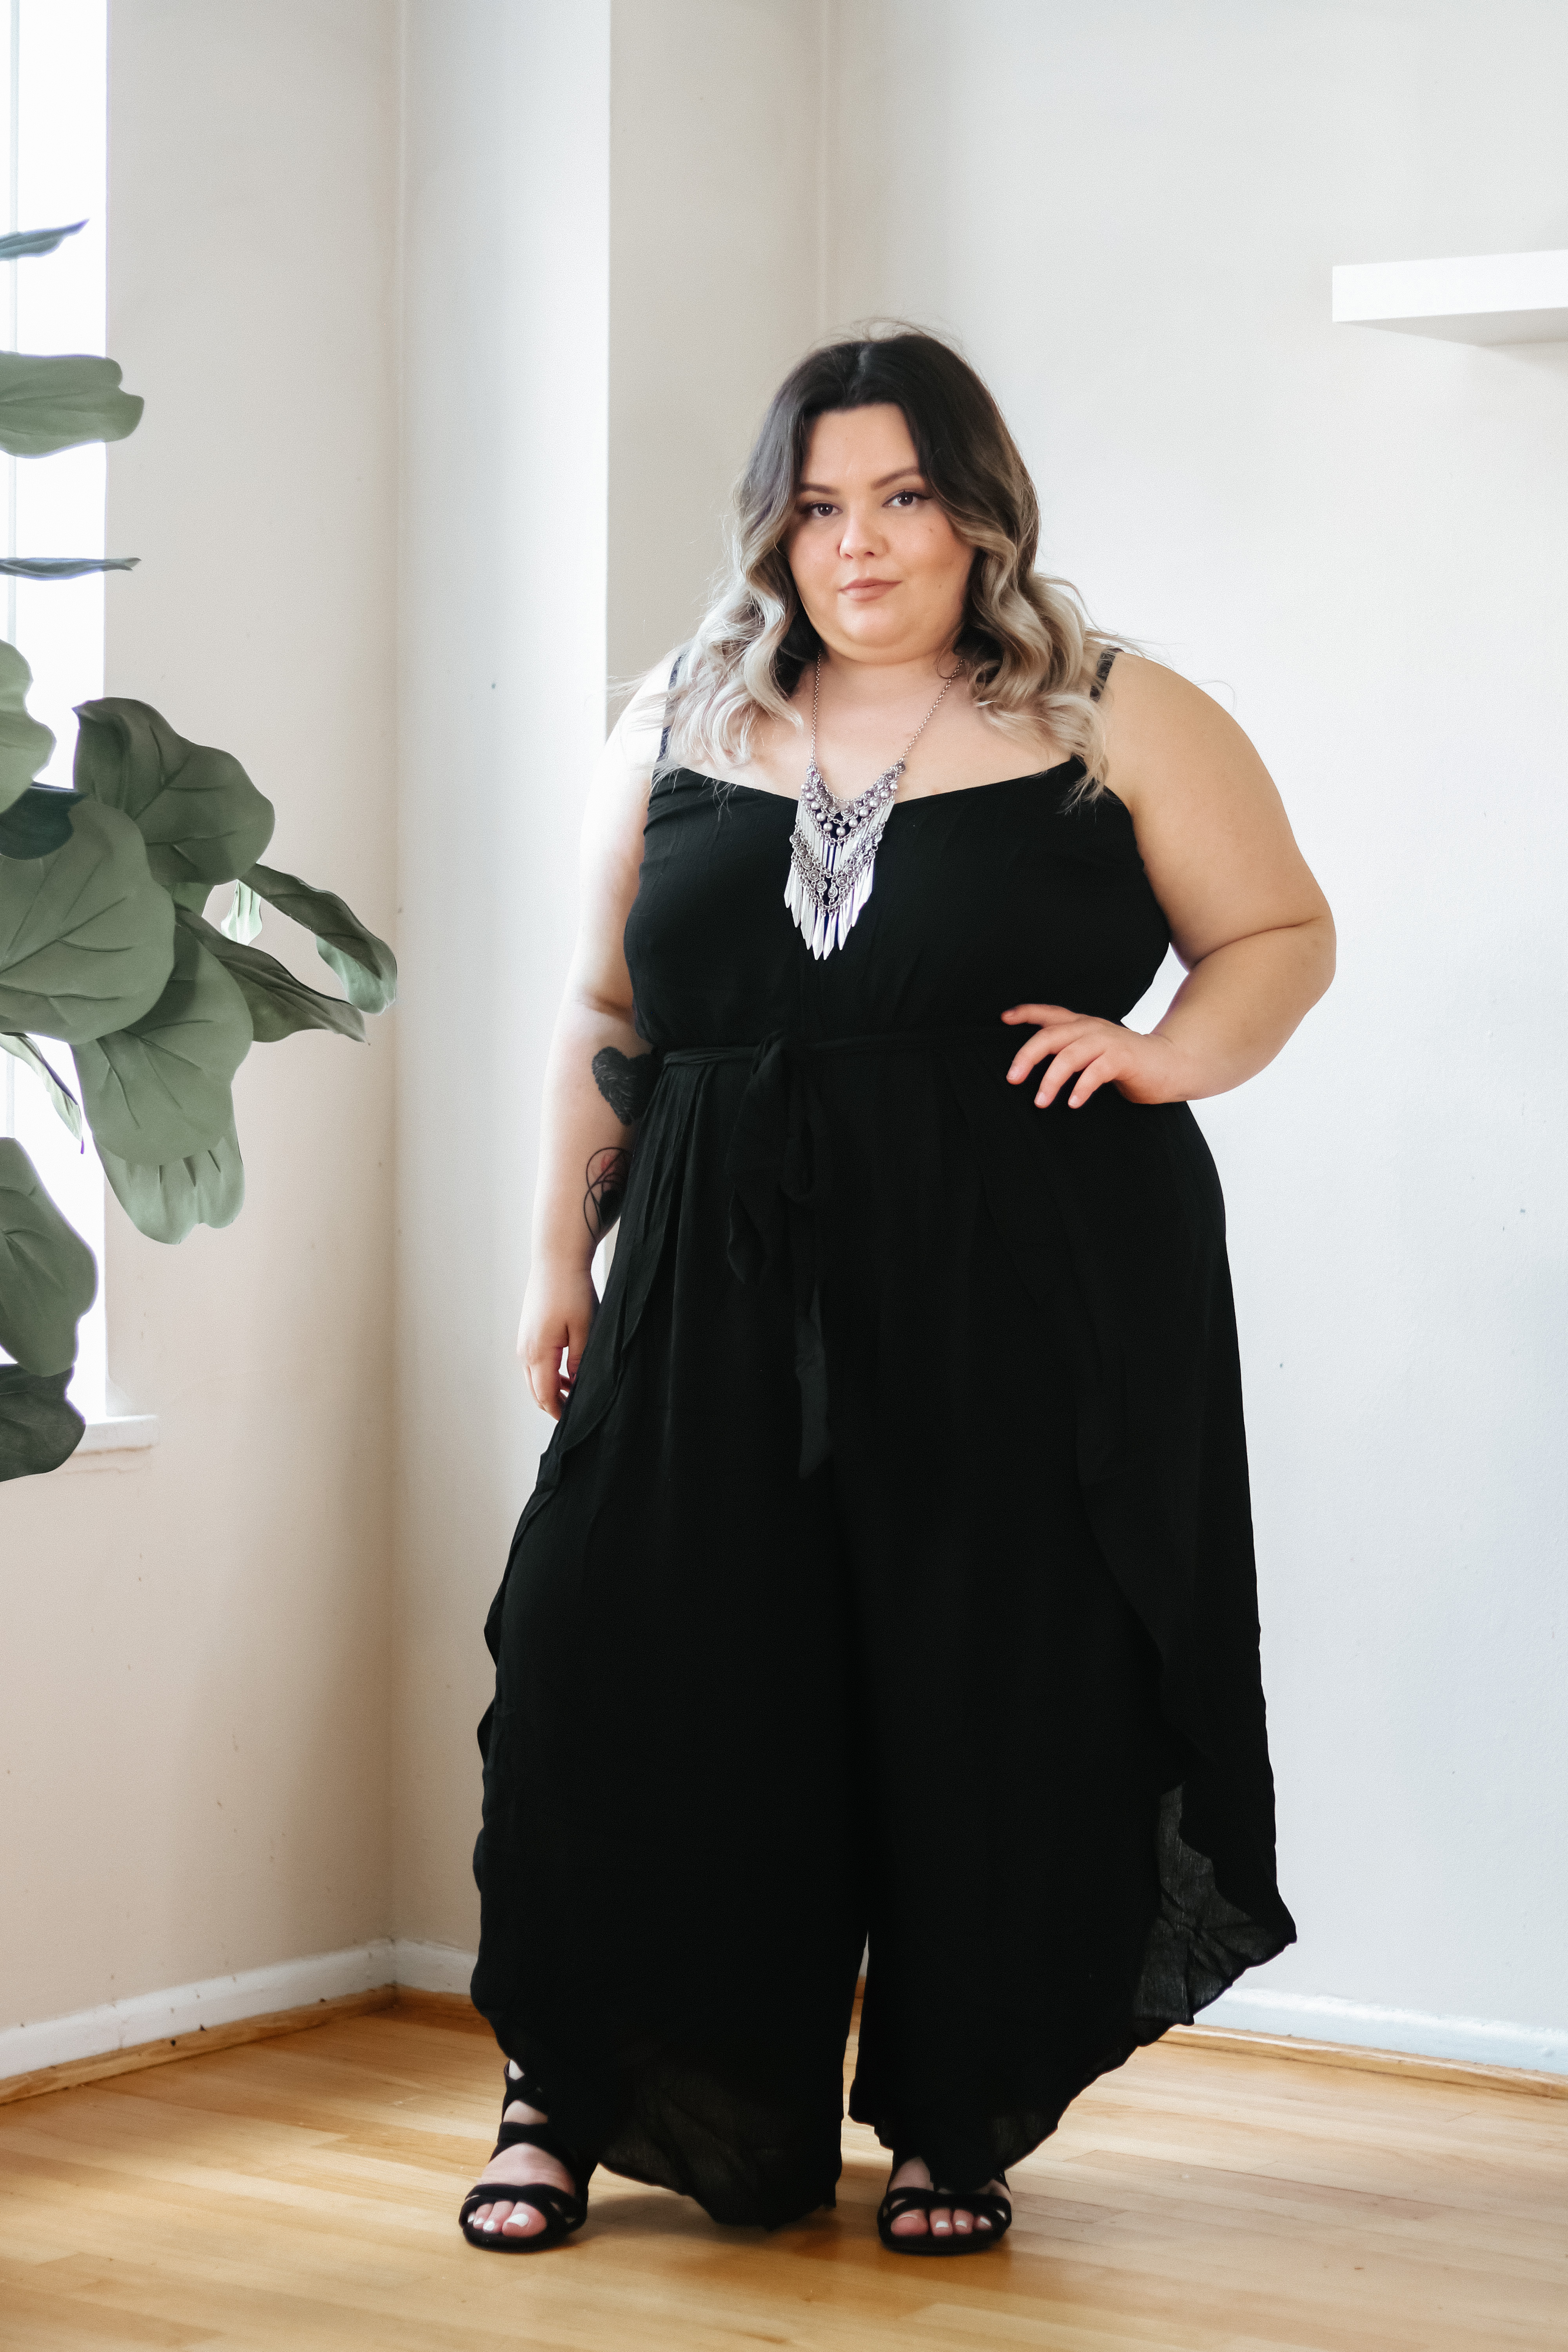 Chicago Plus Size Petite Fashion Blogger, influencer, YouTuber, and model Natalie Craig, of Natalie in the City, reviews CoEdition's jumpsuits.